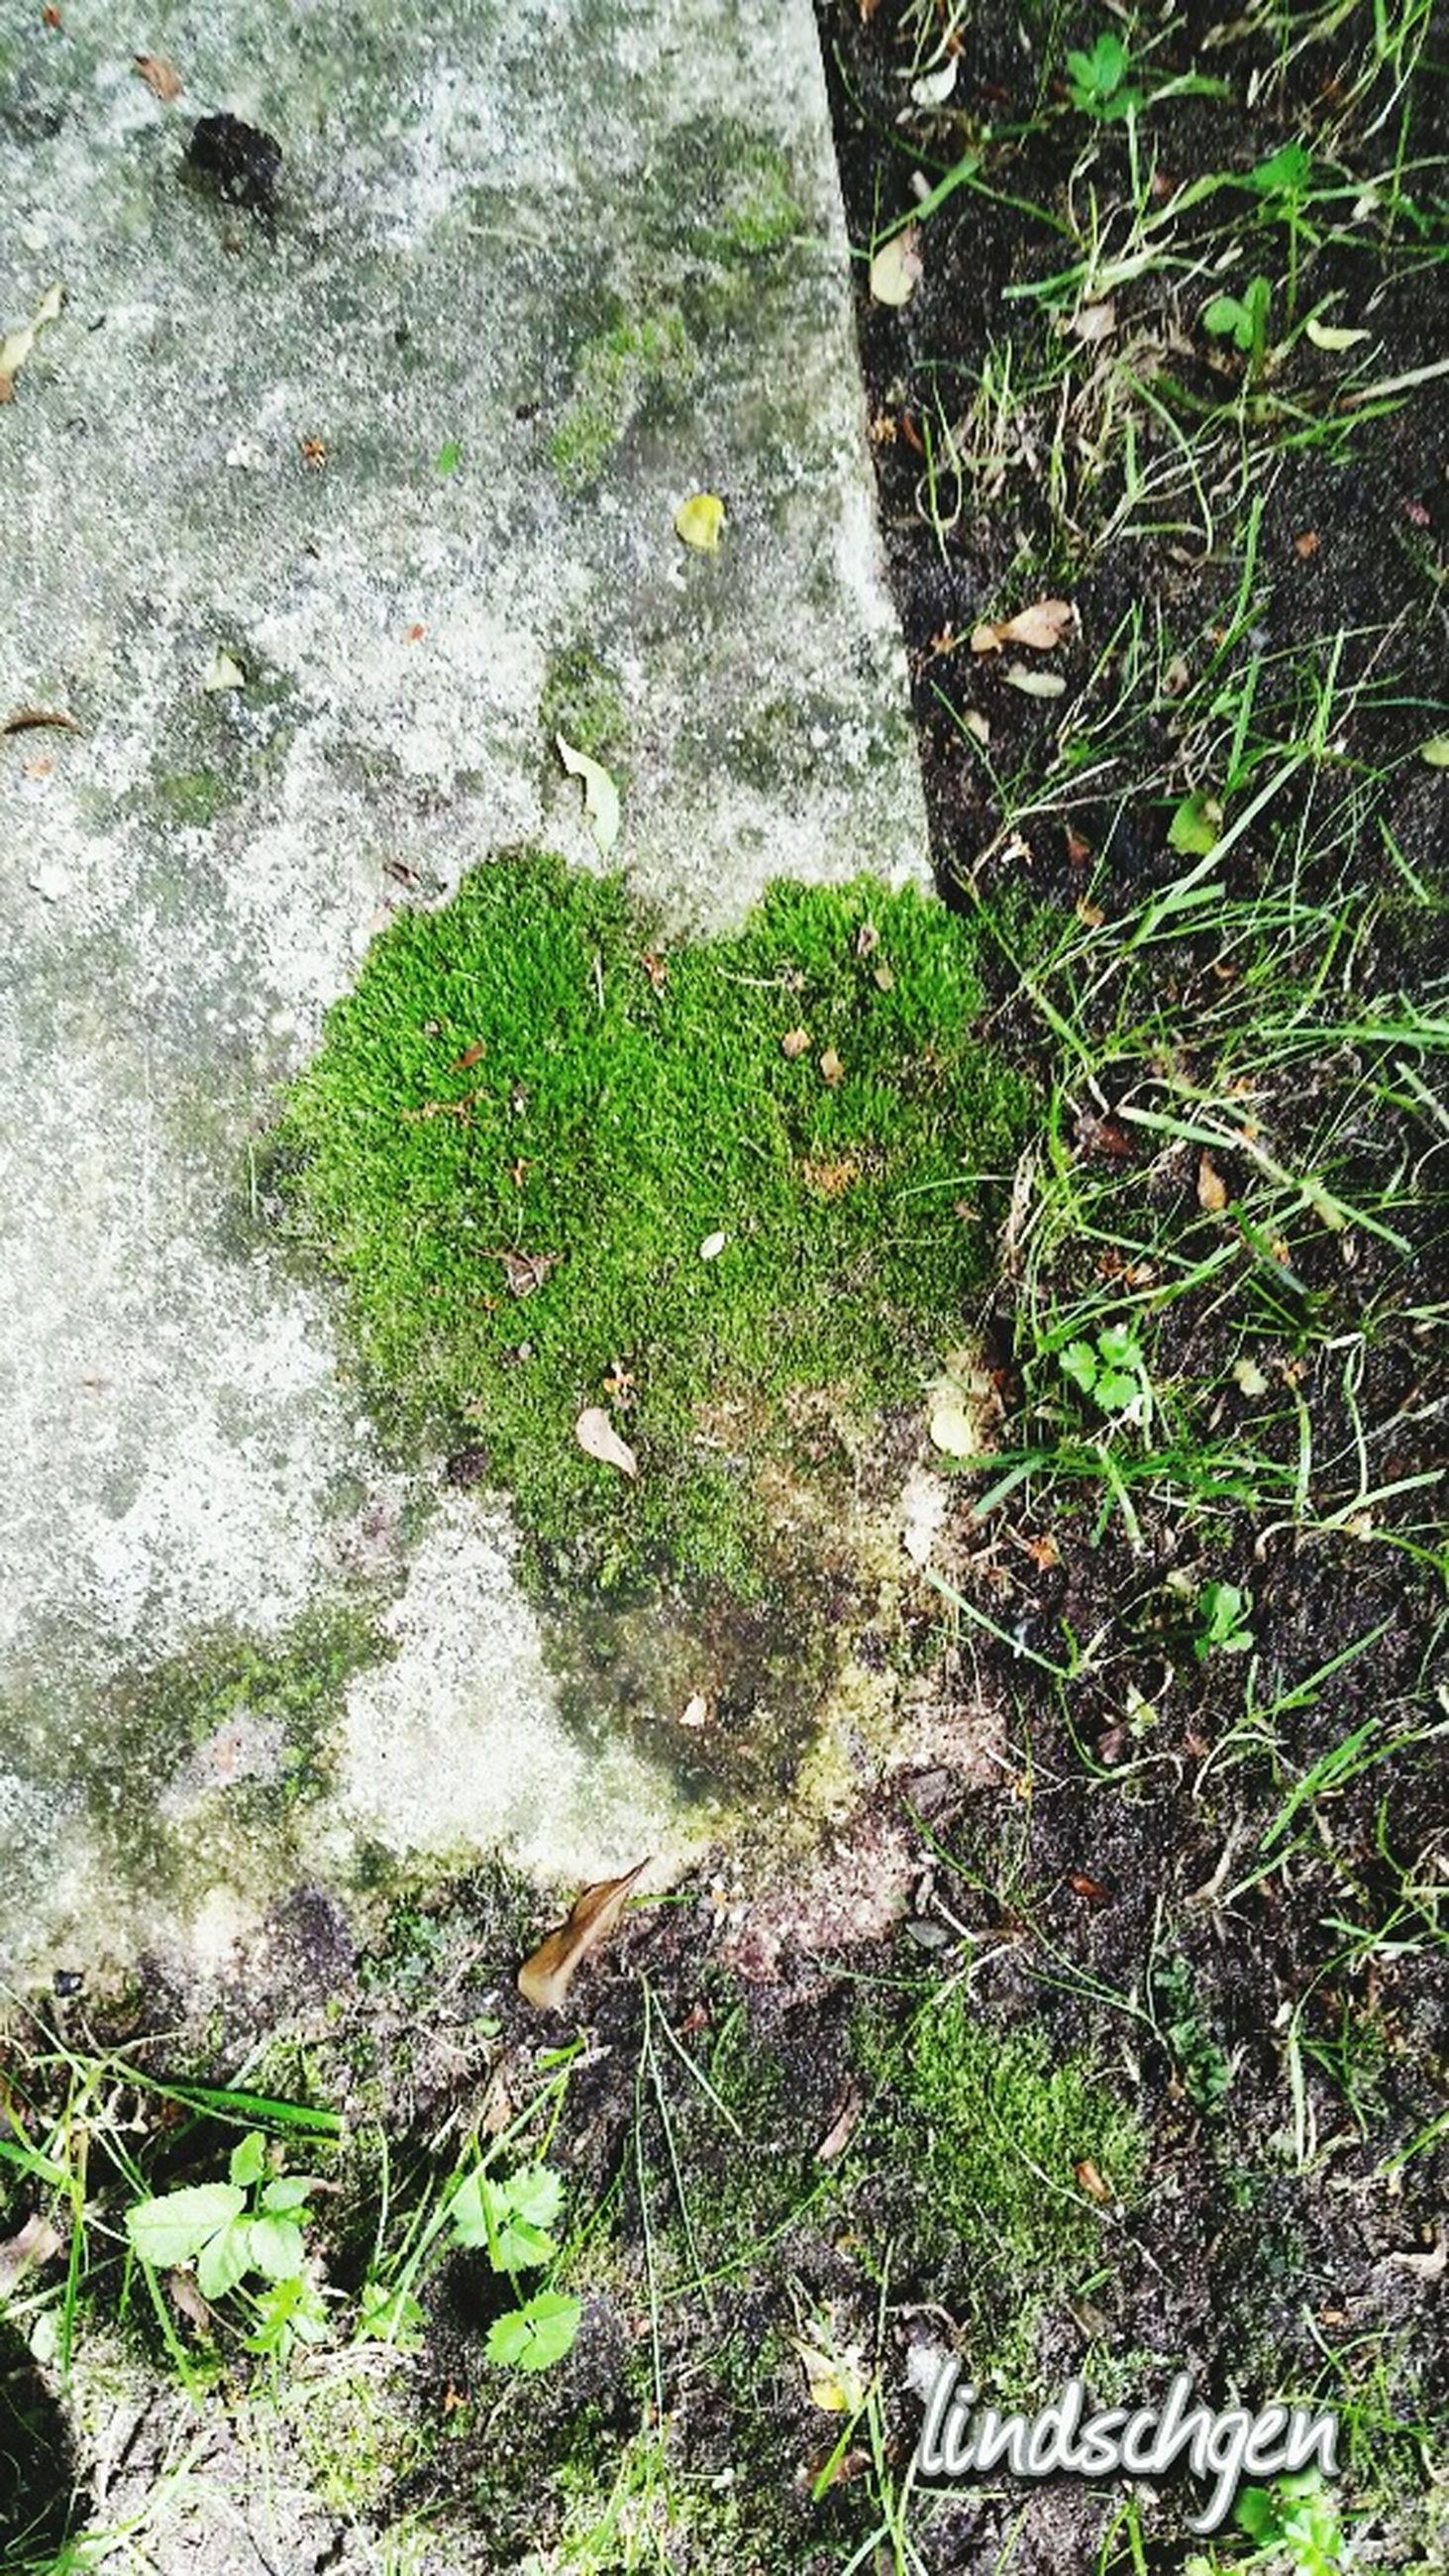 growth, green color, high angle view, plant, moss, nature, green, tree trunk, day, growing, outdoors, tranquility, beauty in nature, fragility, full frame, botany, overhead view, scenics, no people, tranquil scene, freshness